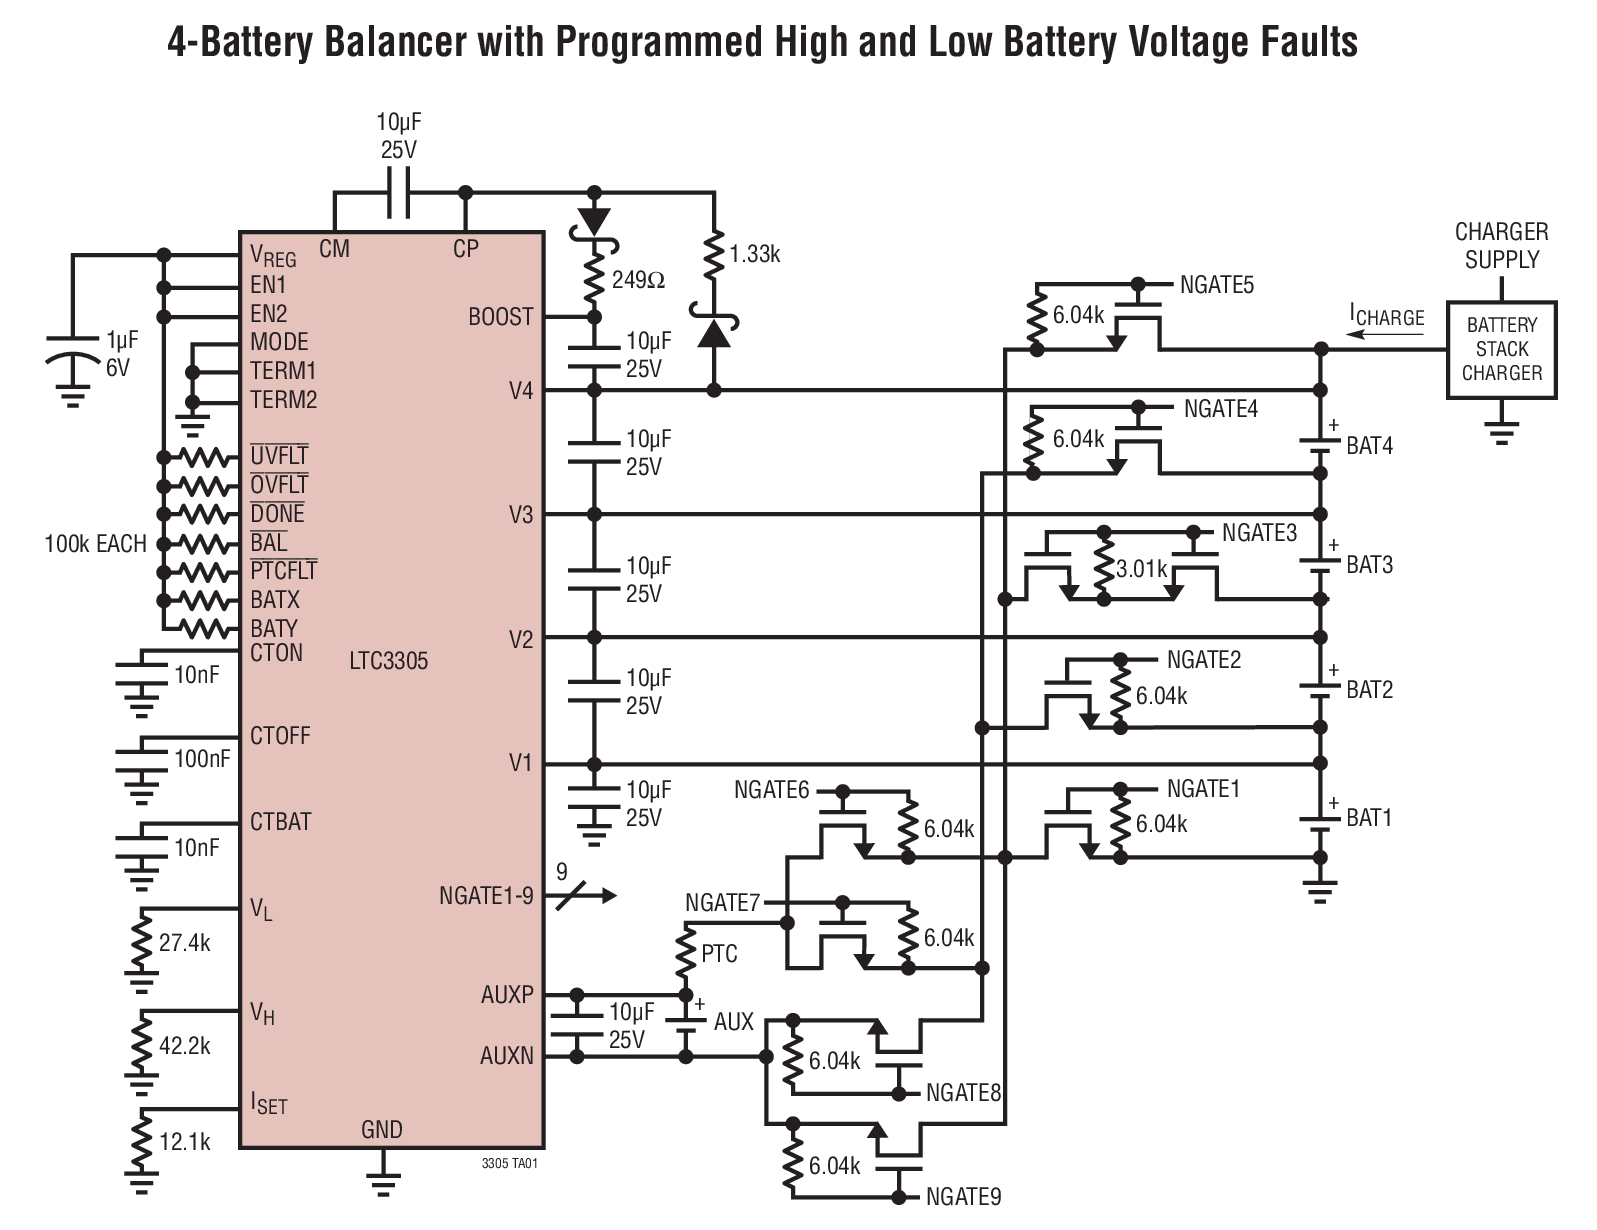 4 battery balancer with programmed high and low battery voltage faults [ 1597 x 1230 Pixel ]